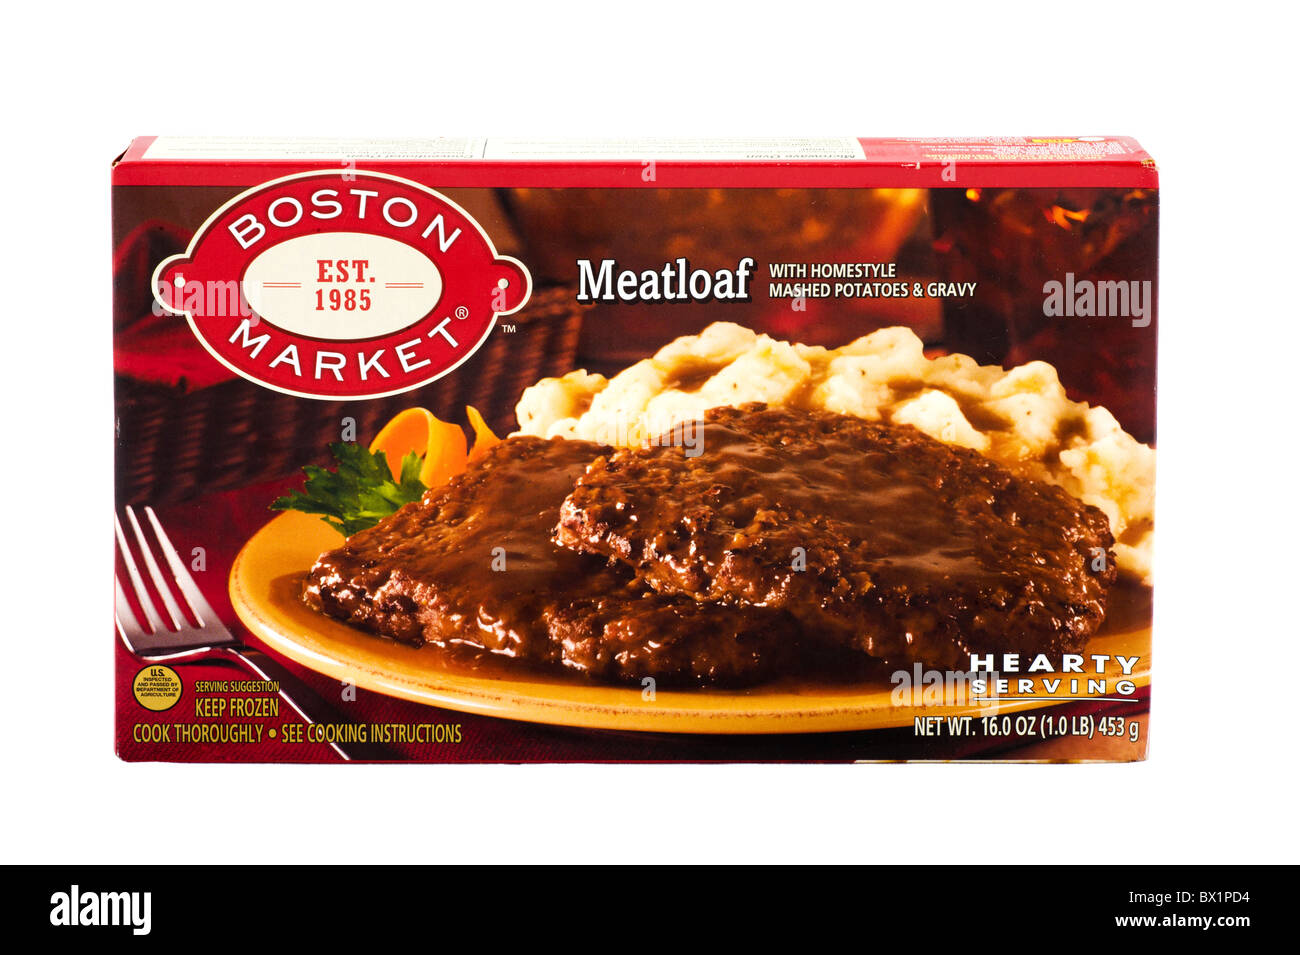 Boston Market Meatloaf and Mashed Potatoes frozen ready meal, USA - Stock Image